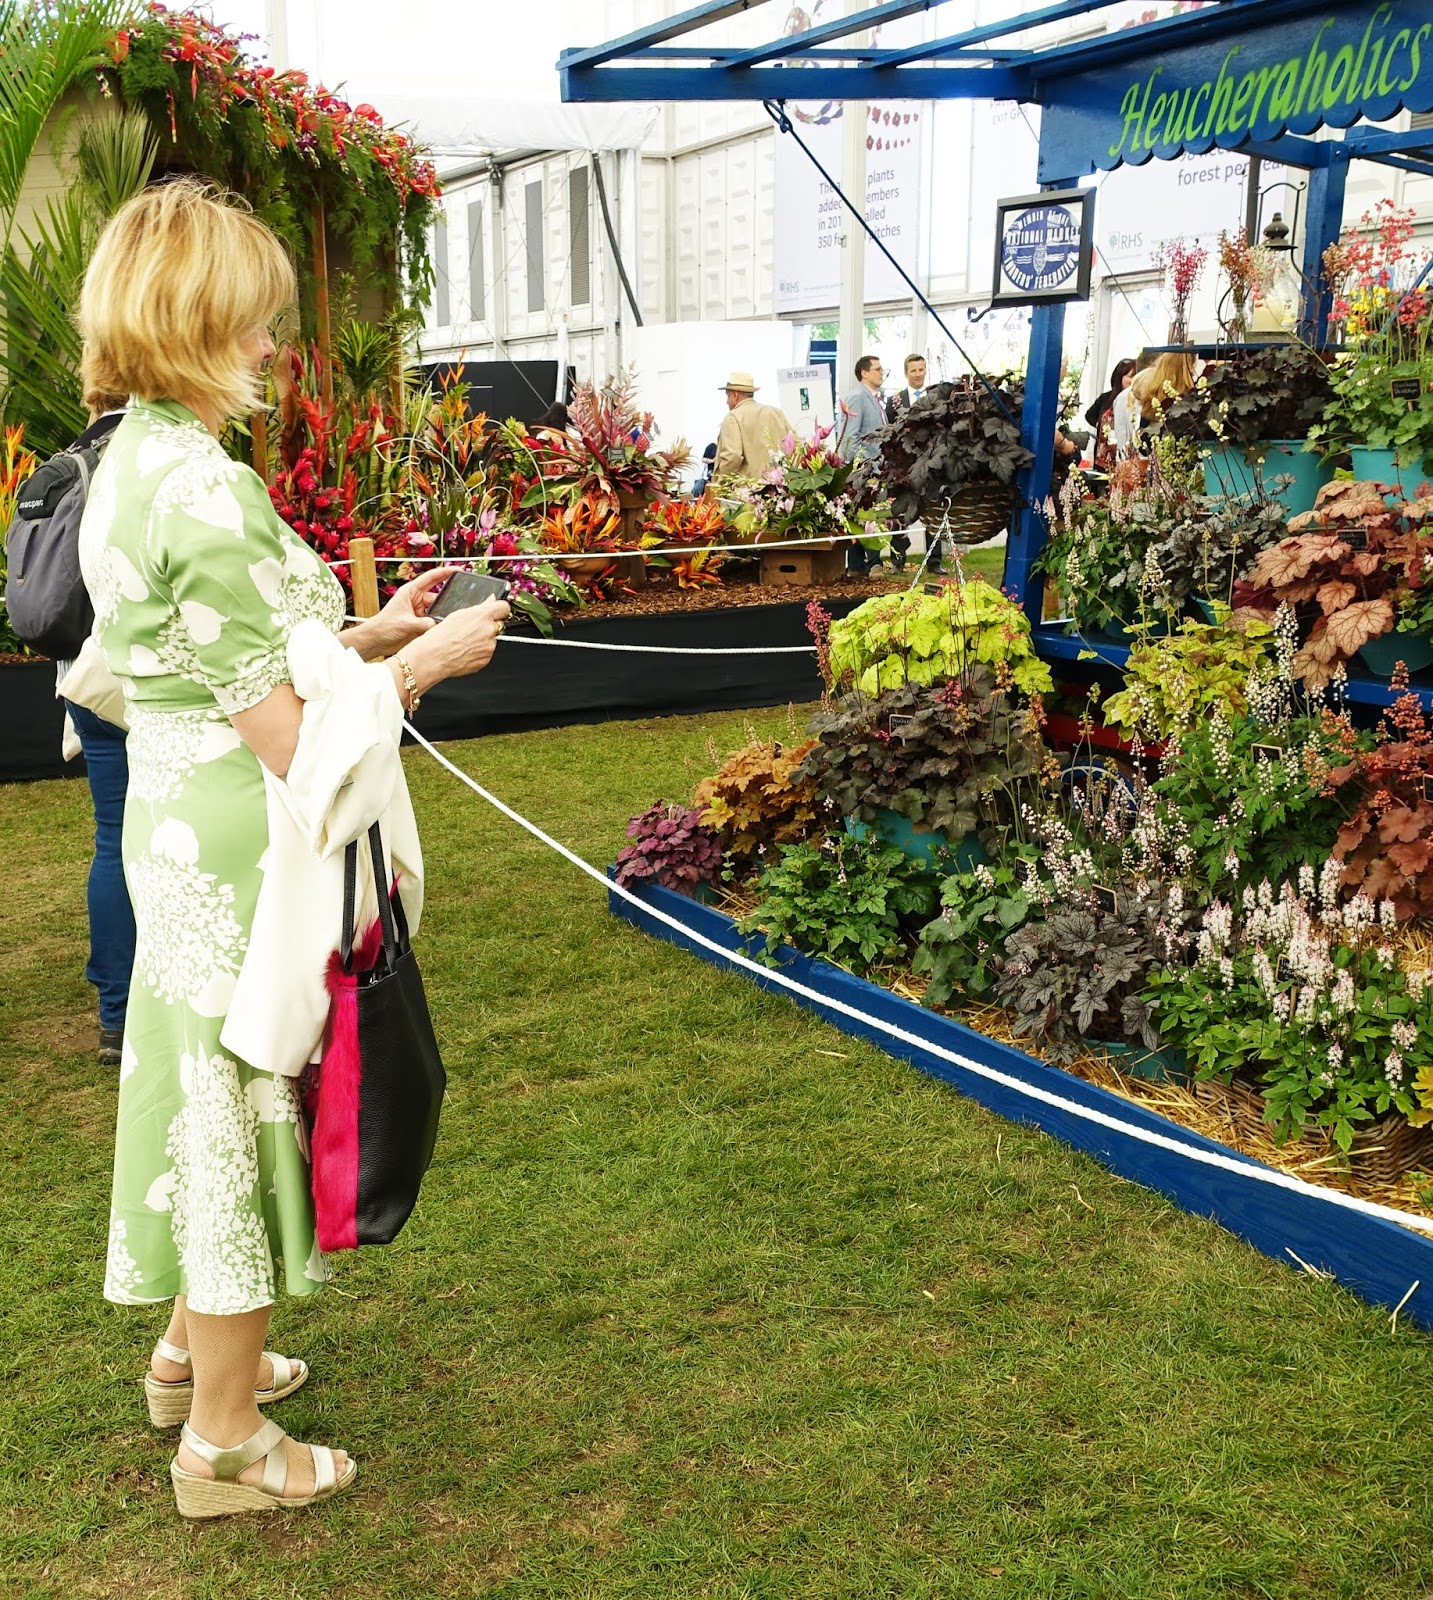 Woman in green hydrangeas print dress taking photos of heuchera at the Chelsea Flower Show